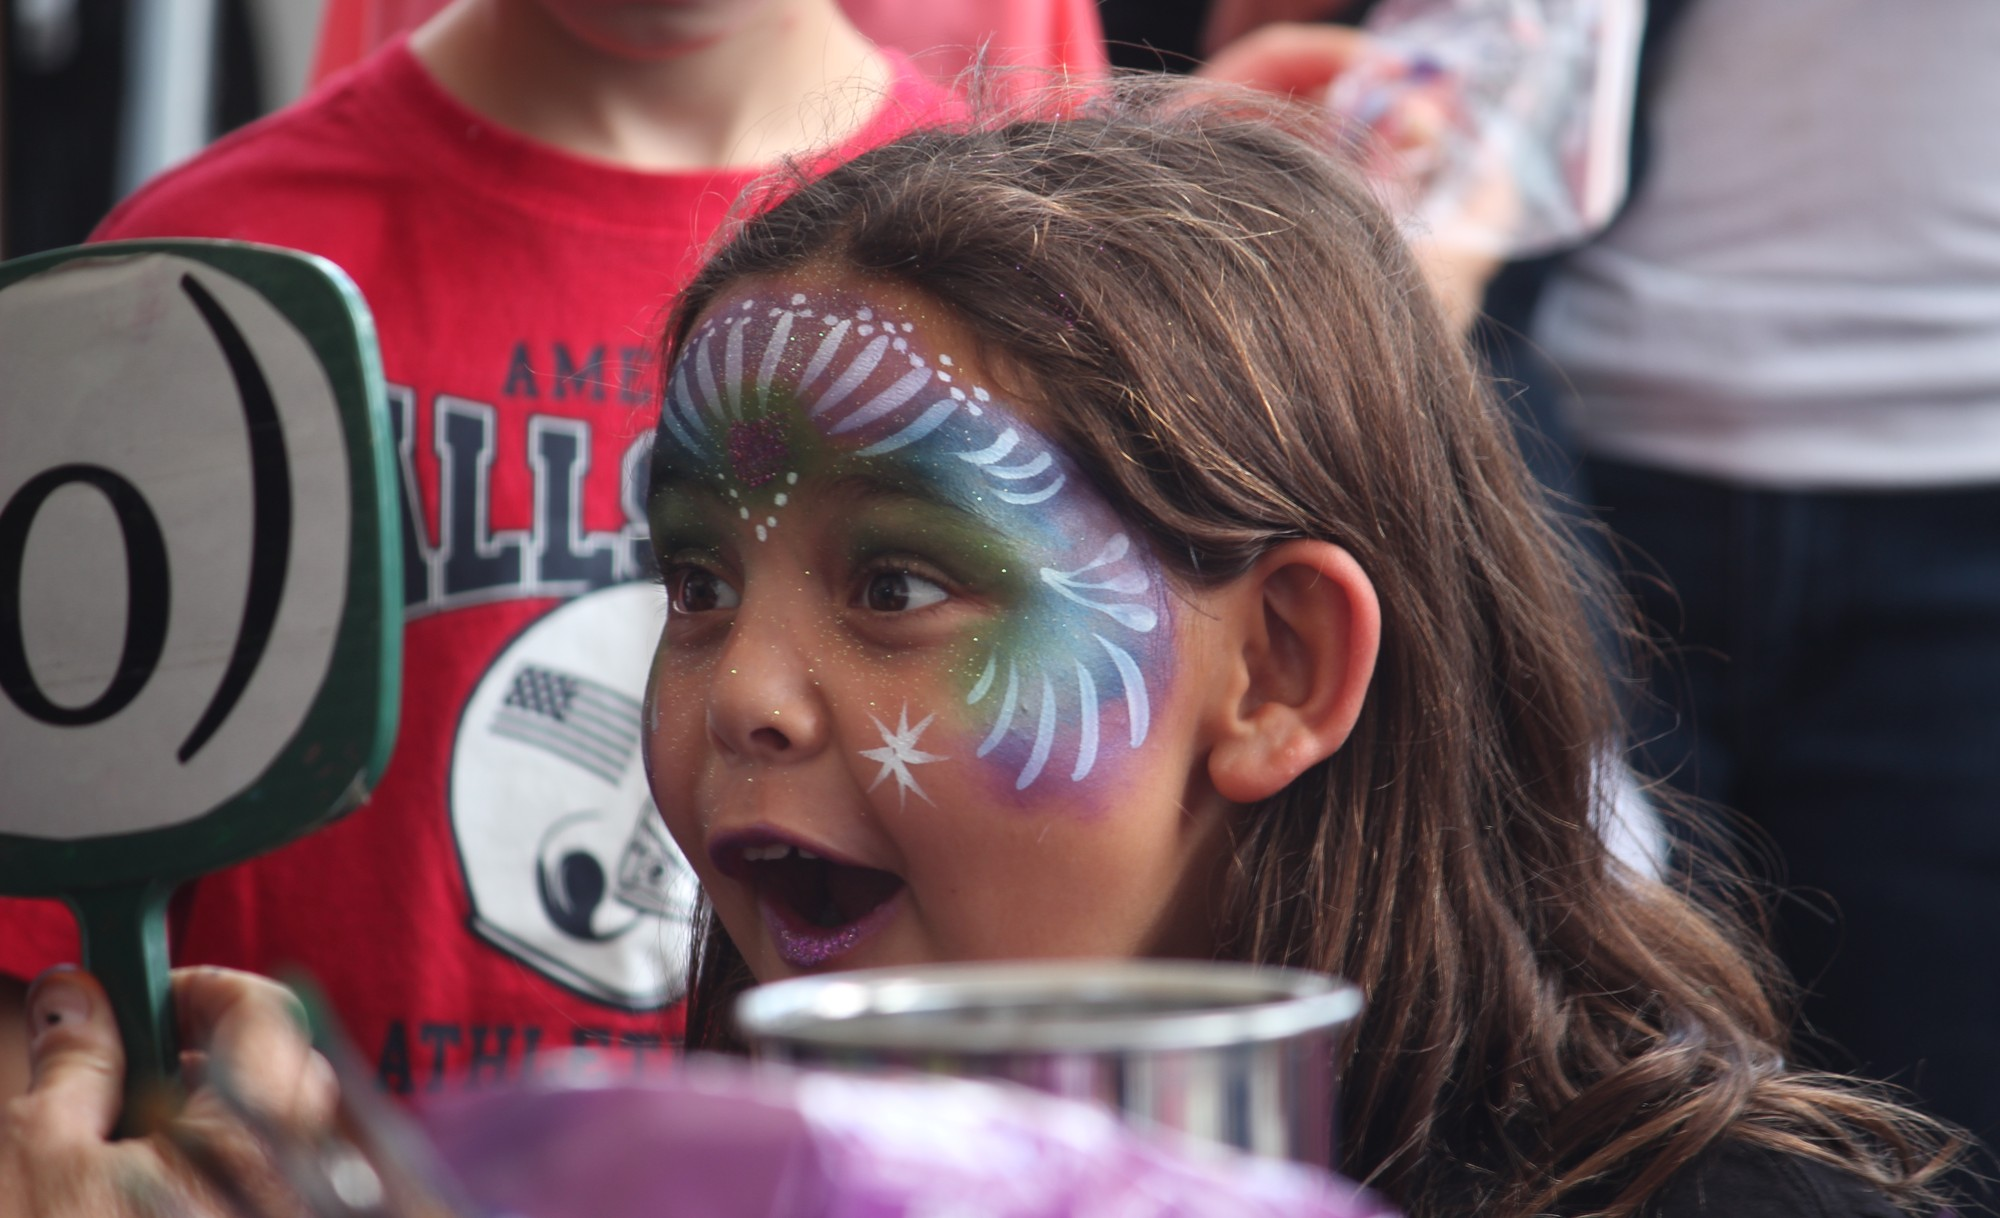 After having her face painted at the festival, Mara Riegel, 7, reveled in her new look.